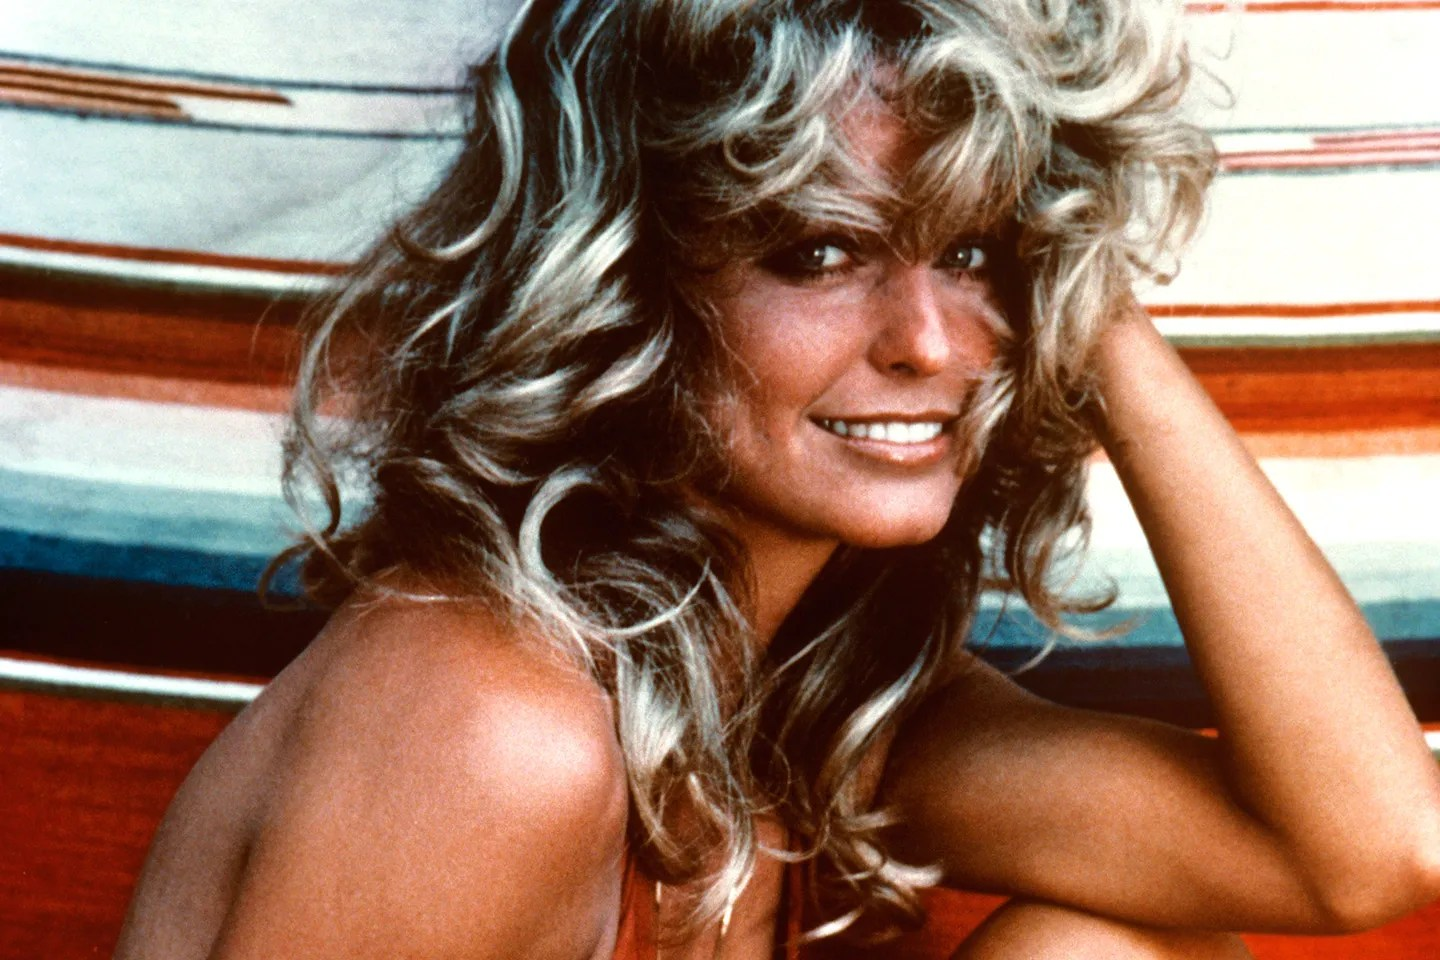 Image result for image of farrah fawcett smiling red bathing suit